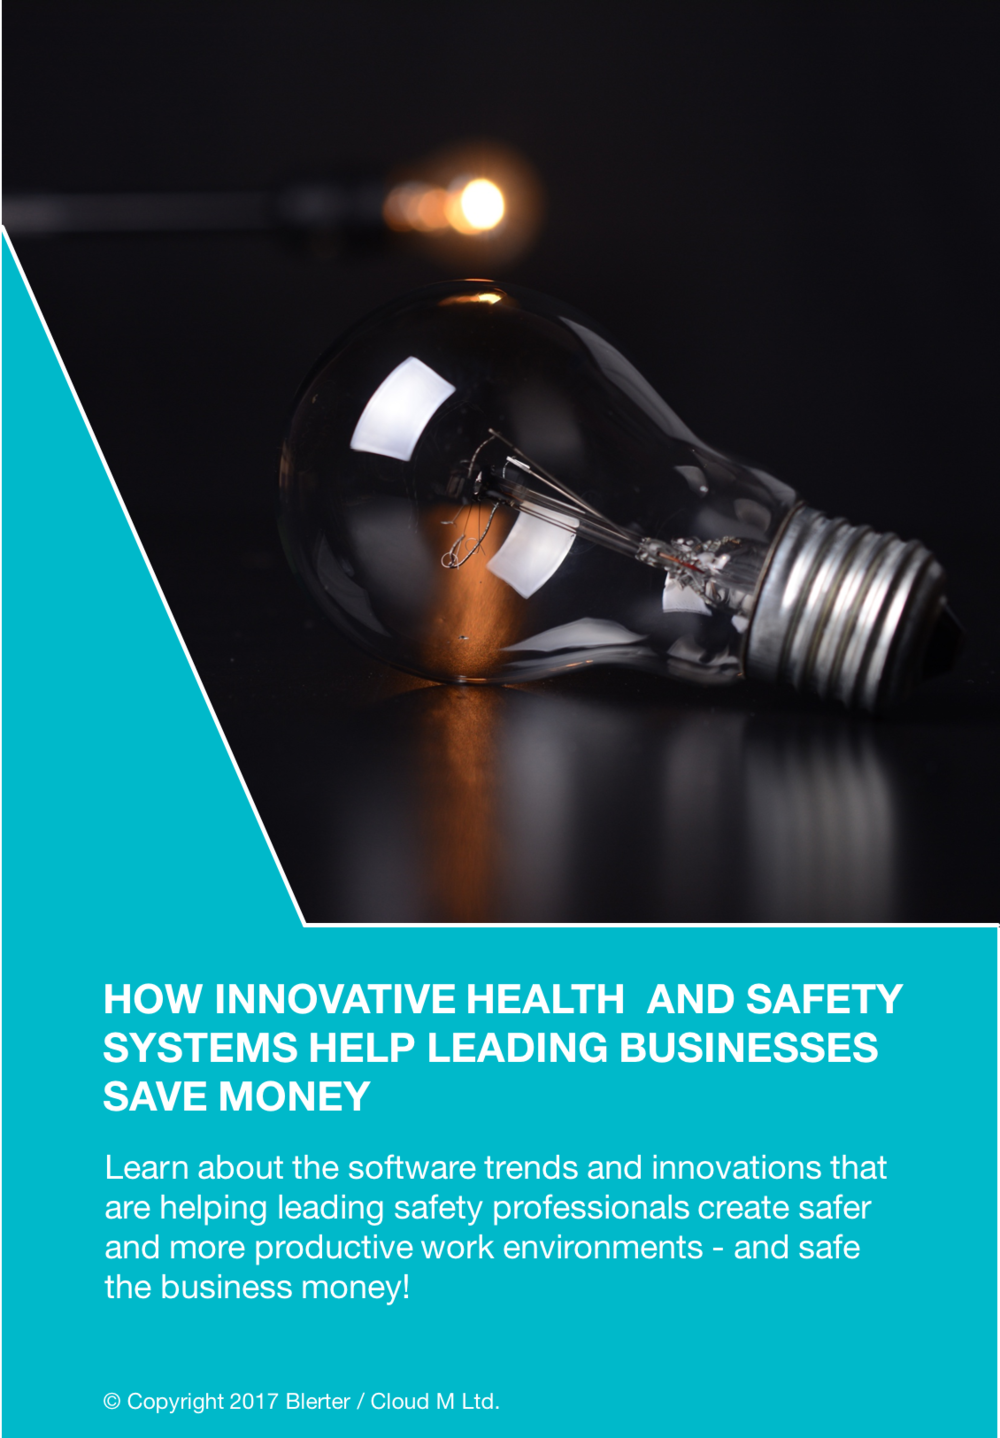 White Paper - health and safety systems that help save money